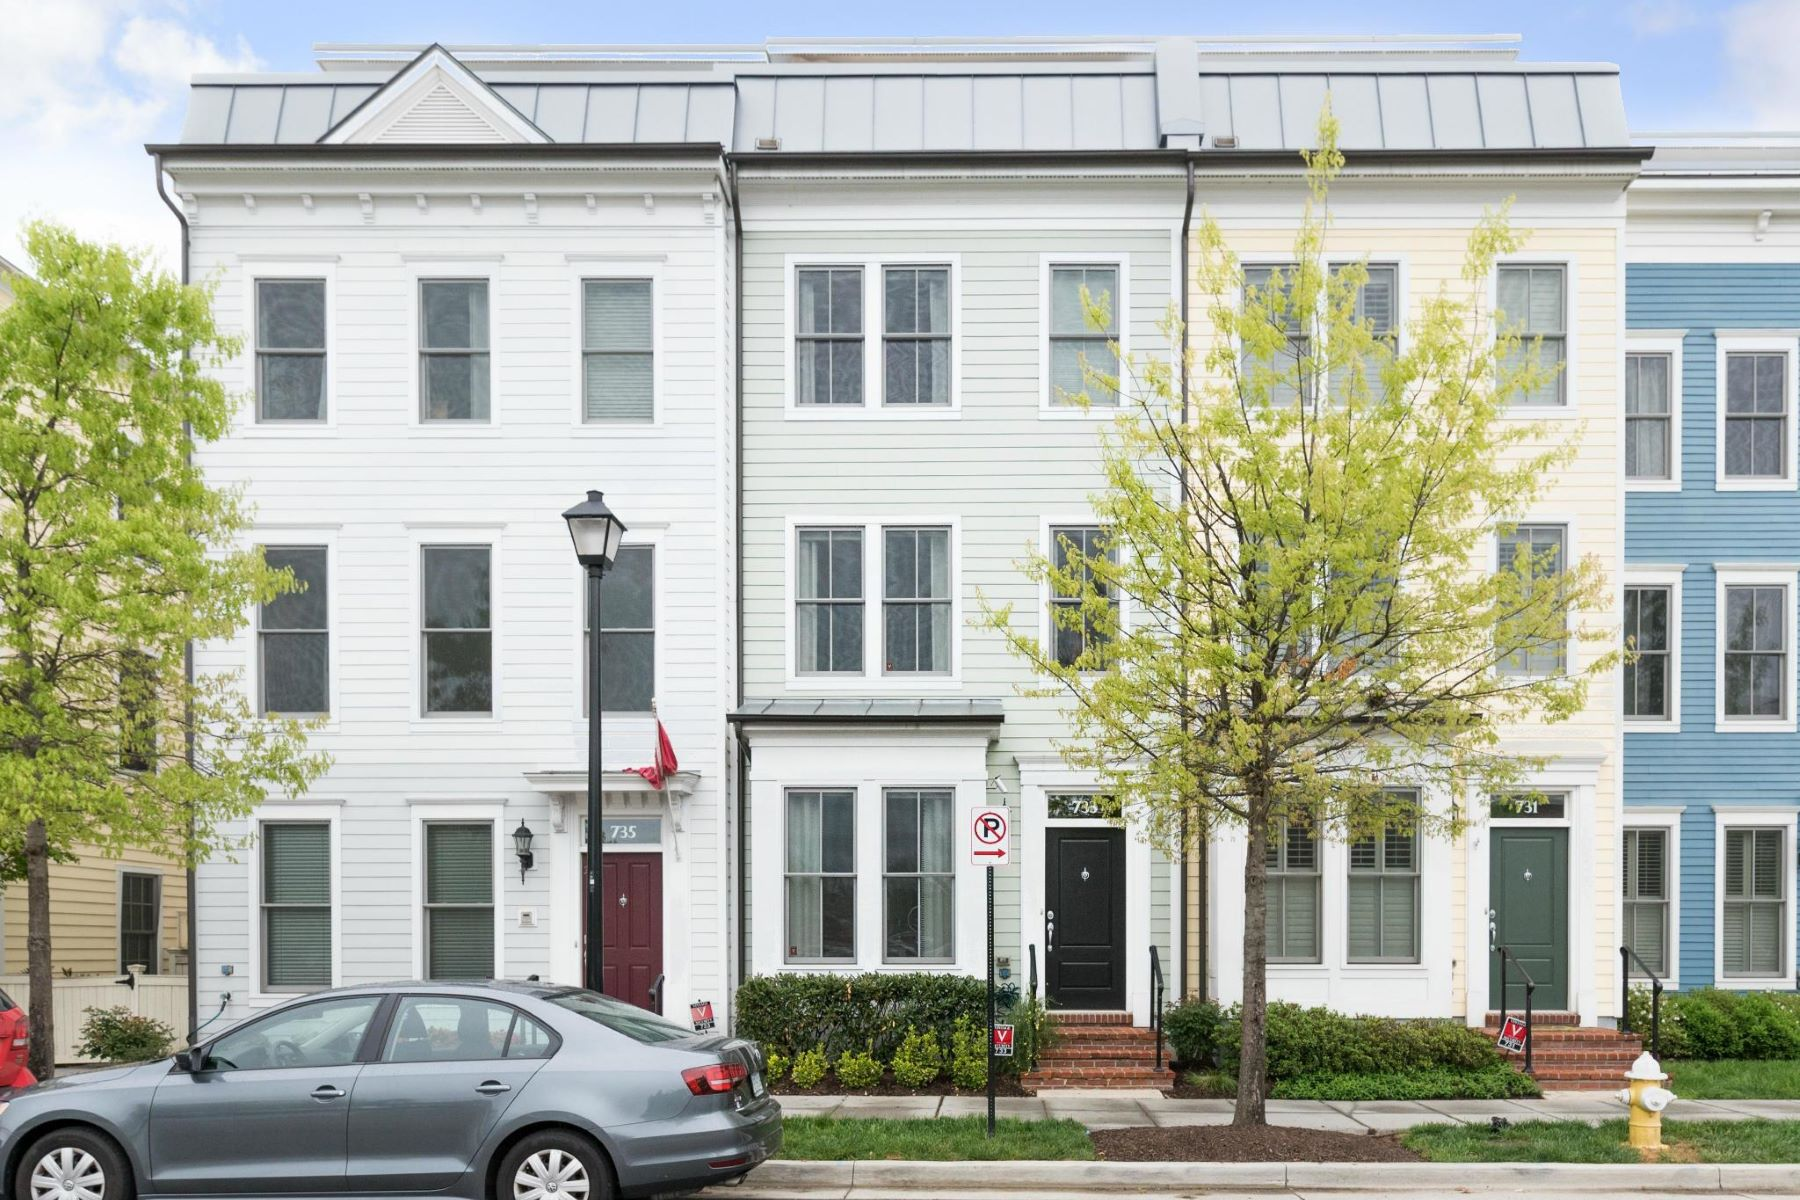 Townhouse for Sale at Old Town Commons 733 Alfred St N Alexandria, Virginia 22314 United States